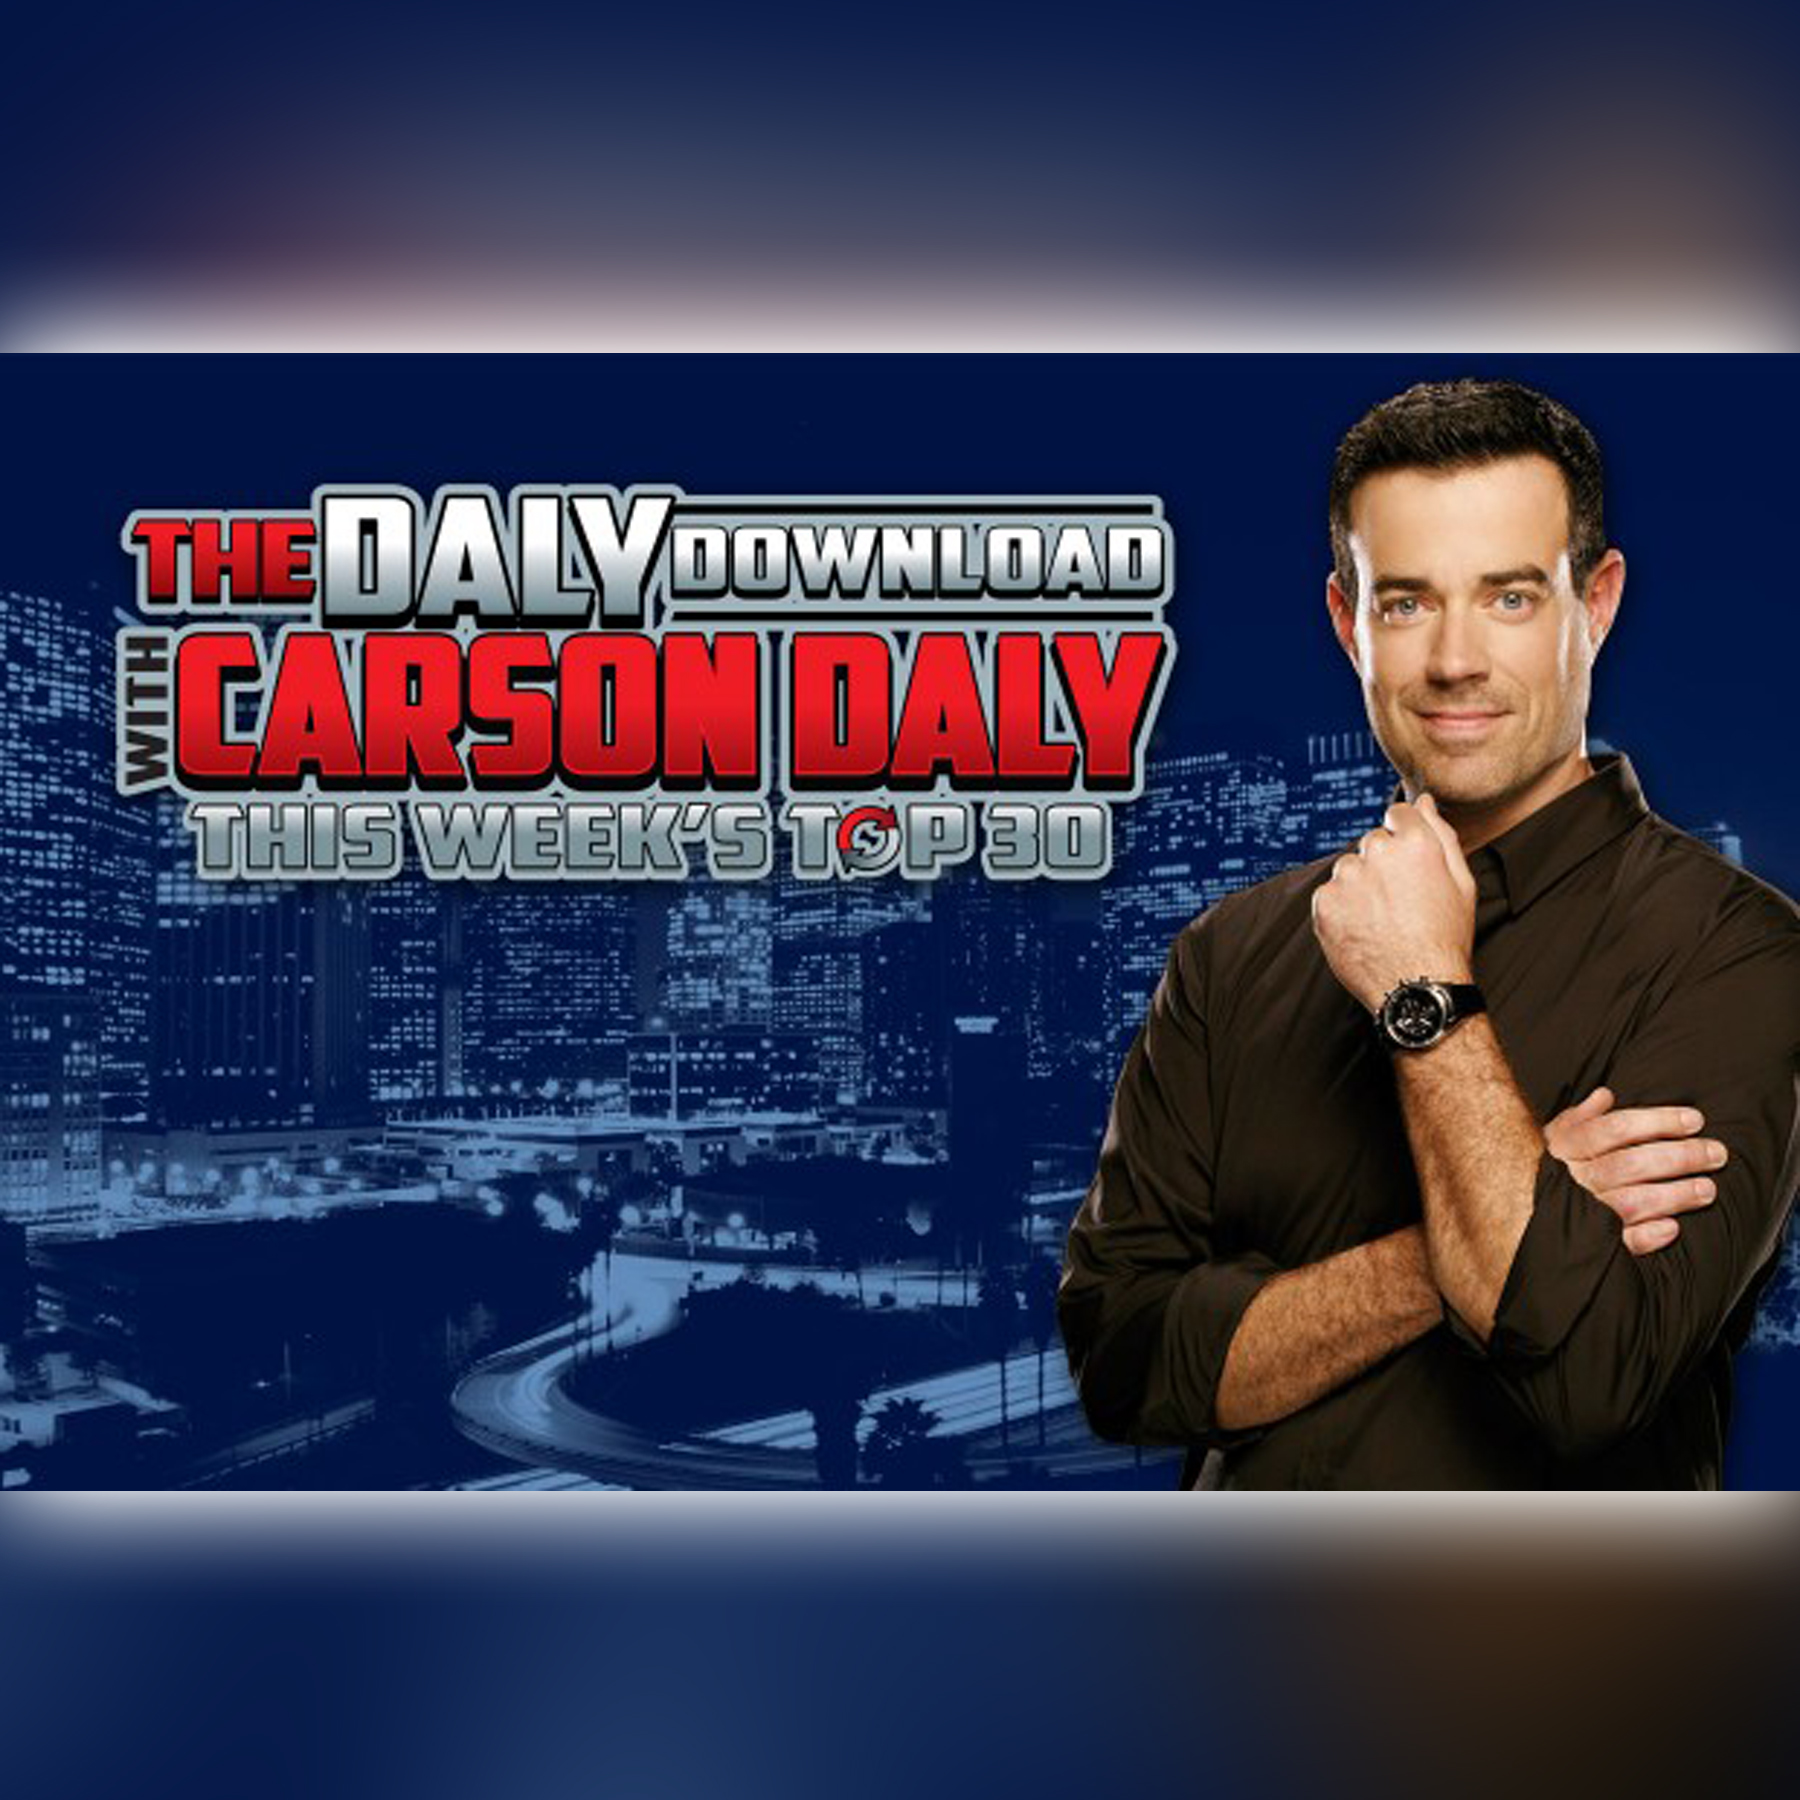 The Daly Download with Carson Daly: This Week's Top 30